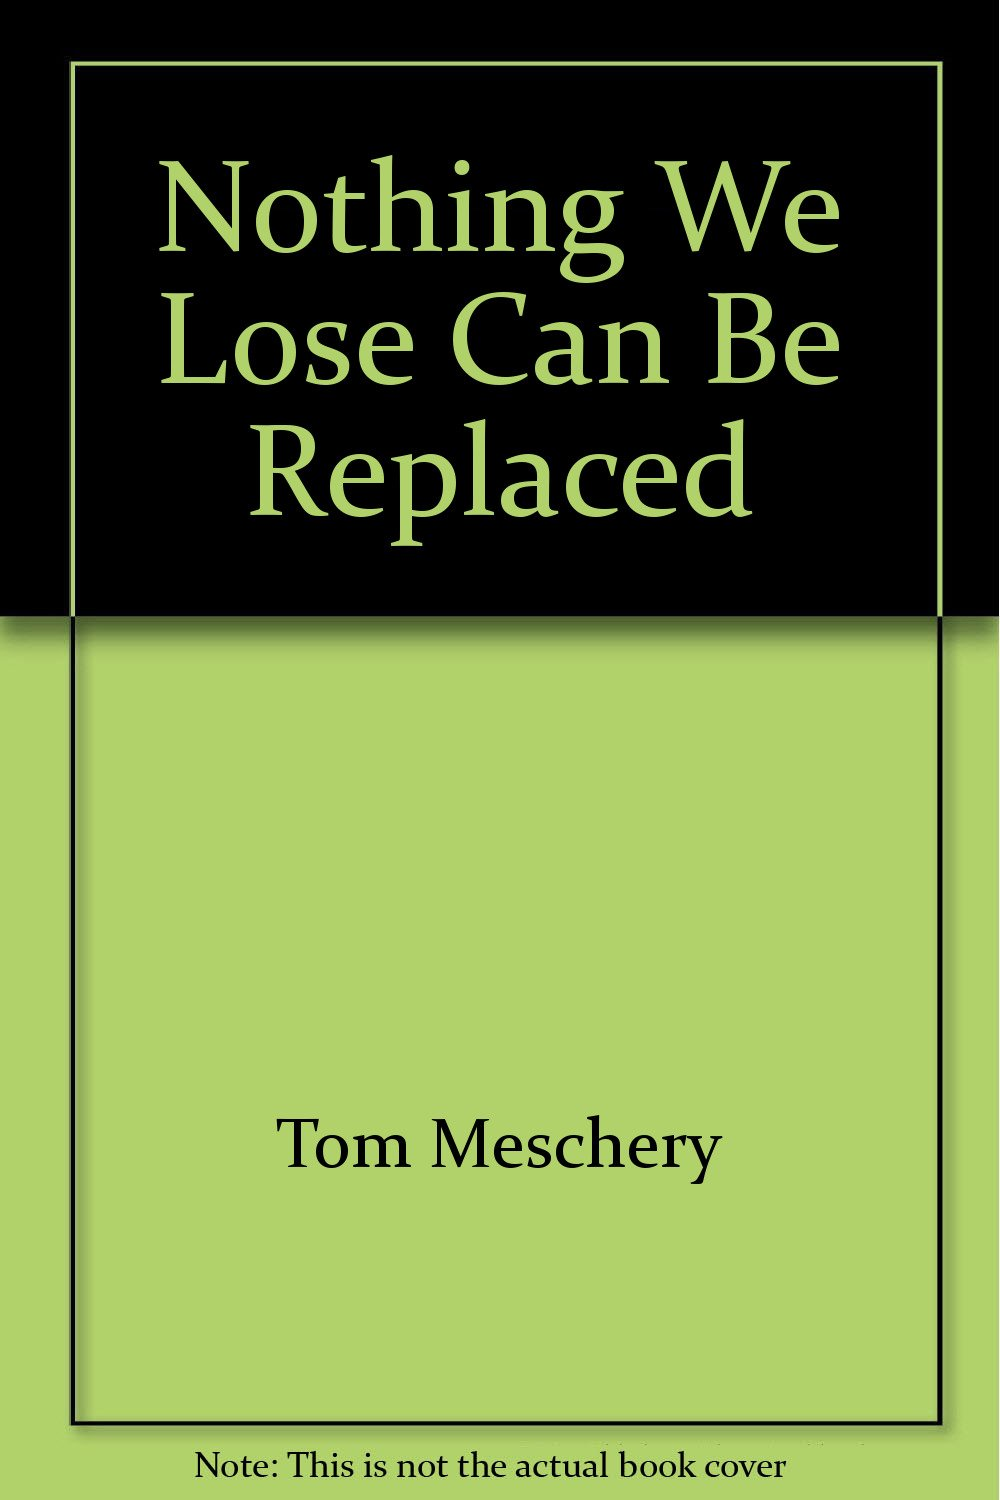 Nothing We Lose Can Be Replaced Tom Meschery